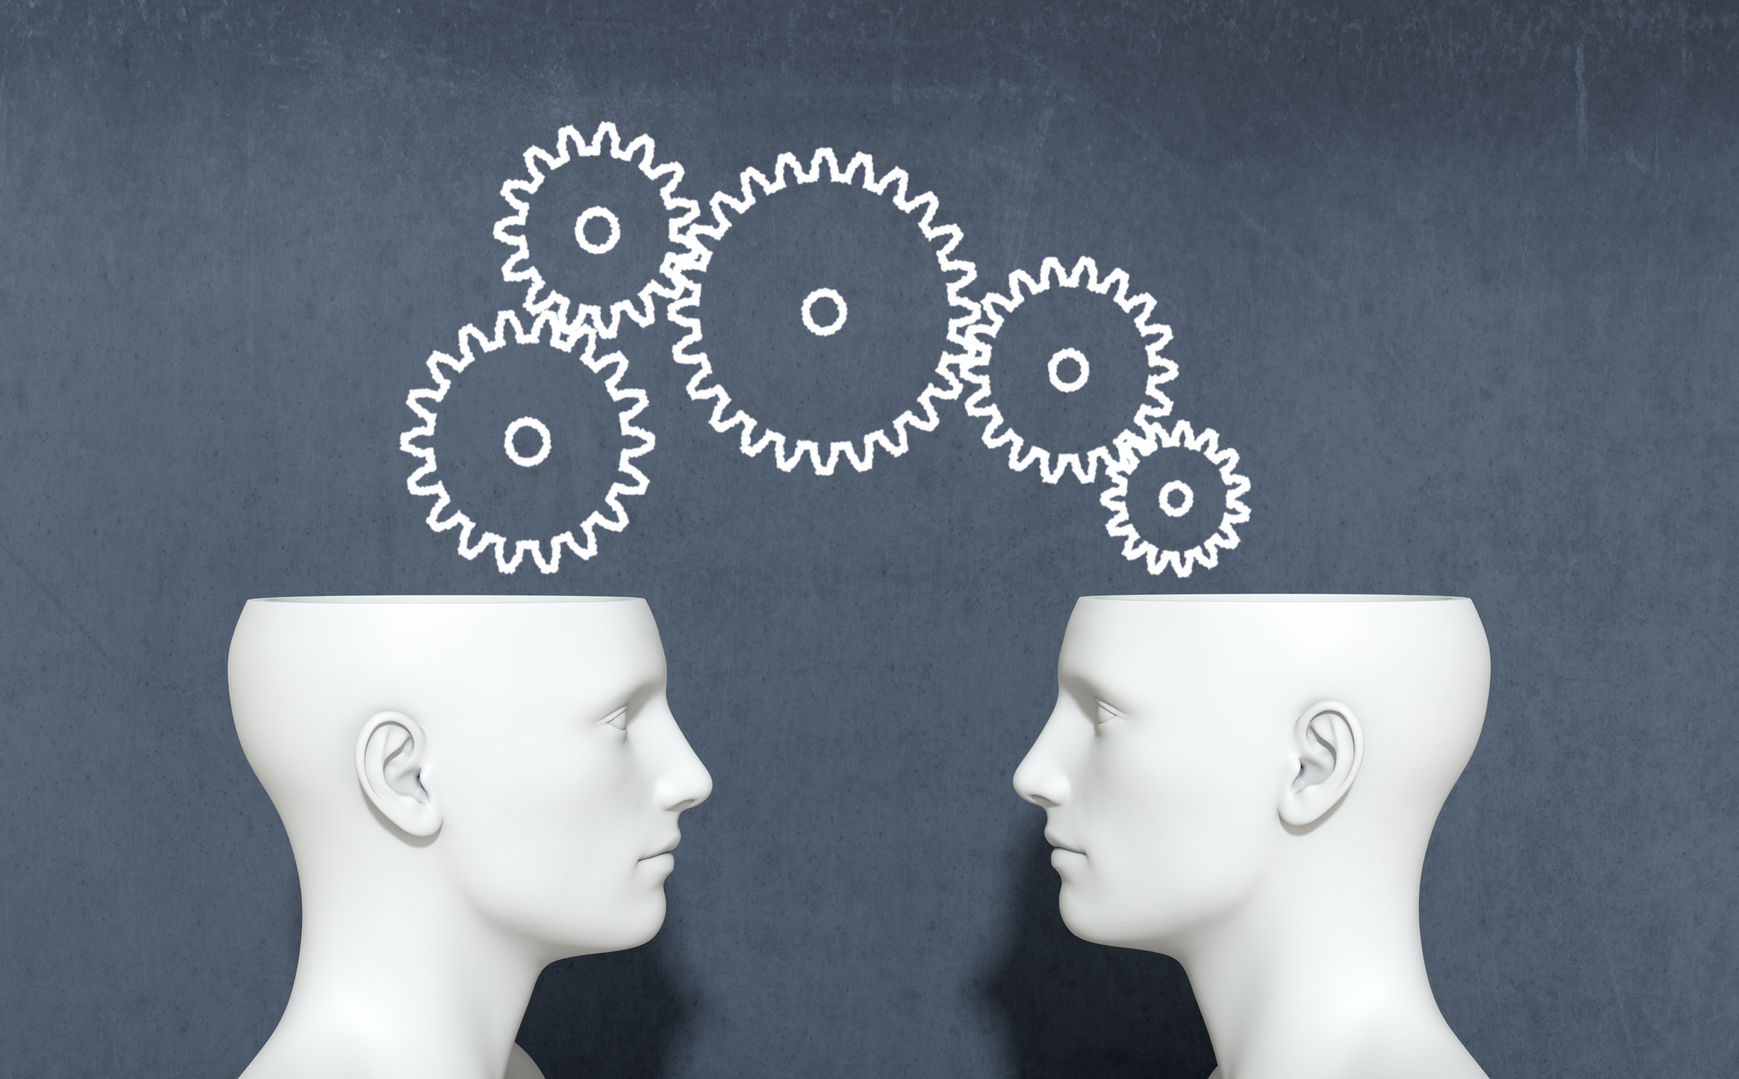 37315843 - two heads with gears, concept of information sharing and collaboration (3d render)